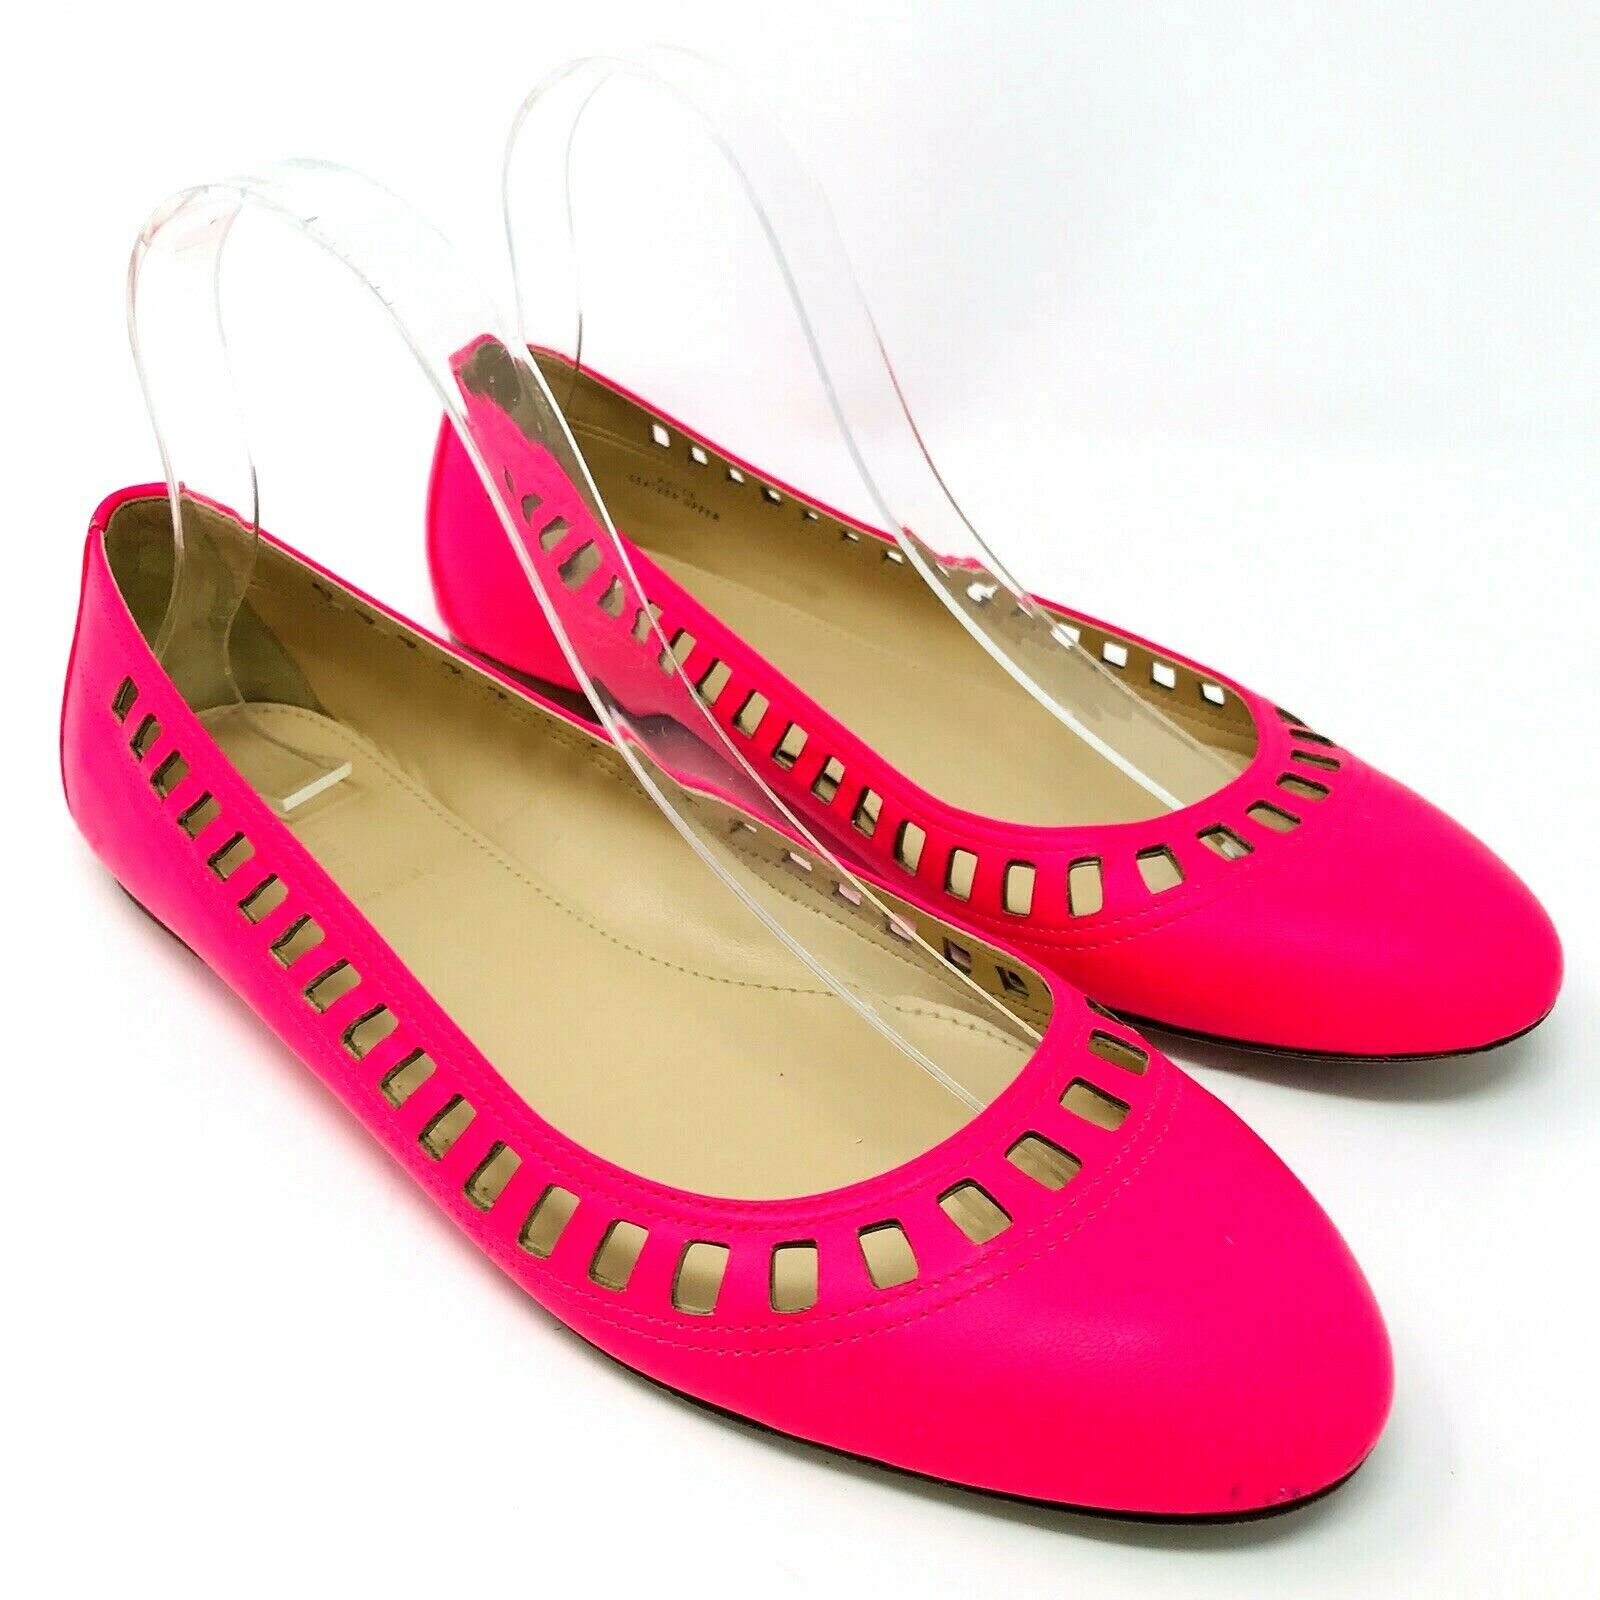 J Crew Made in  Nora Lattice Ballet Flats Sz 8.5 shoes Pink Magenta A6755